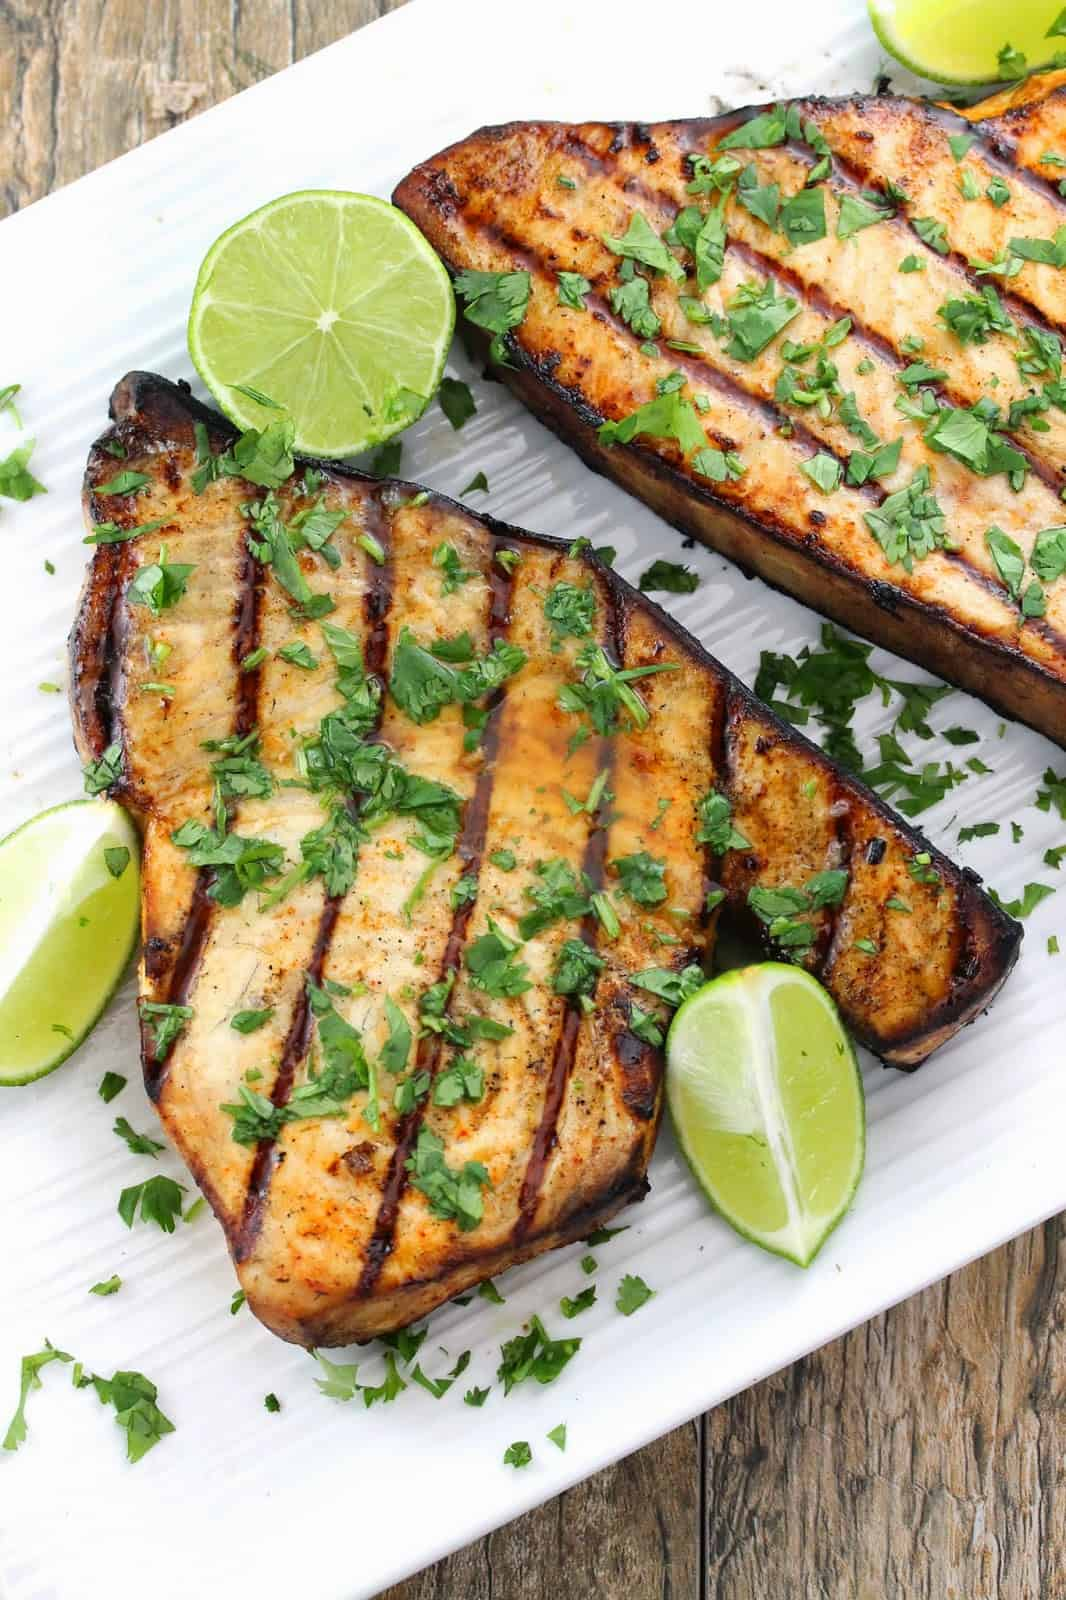 Grilled swordfish topped with cilantro and lime wedges